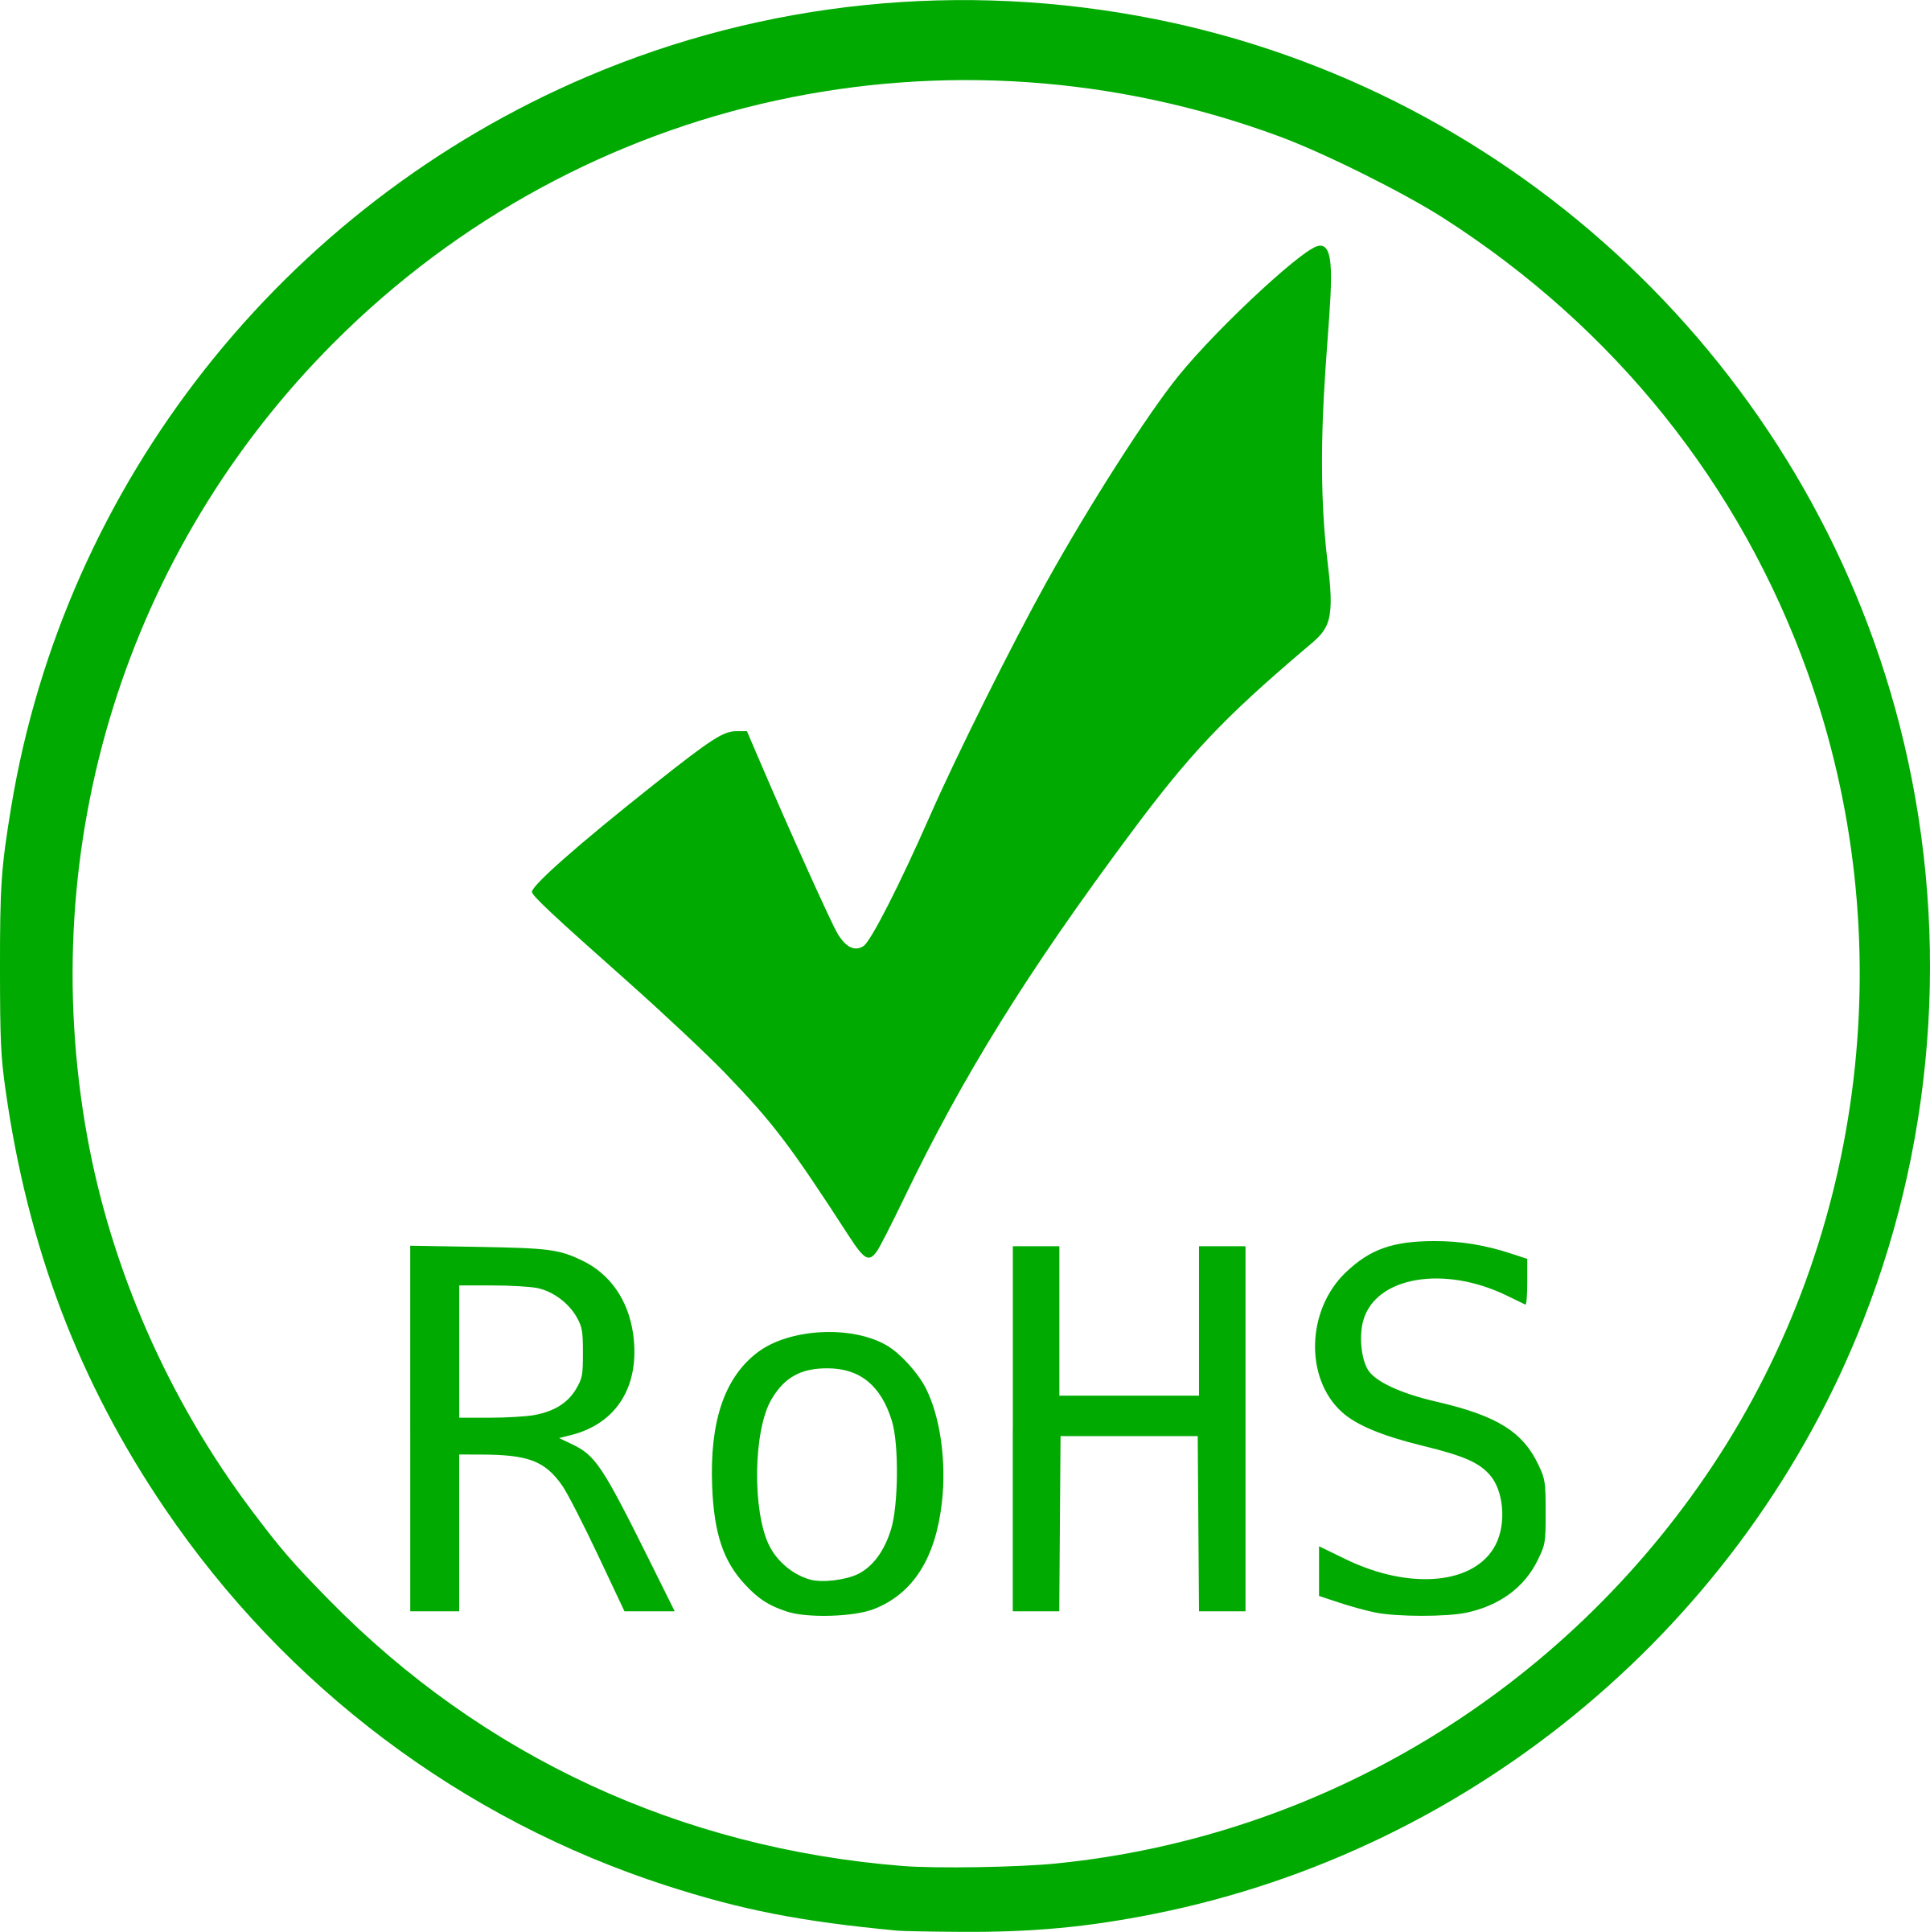 Image result for rohs transparent